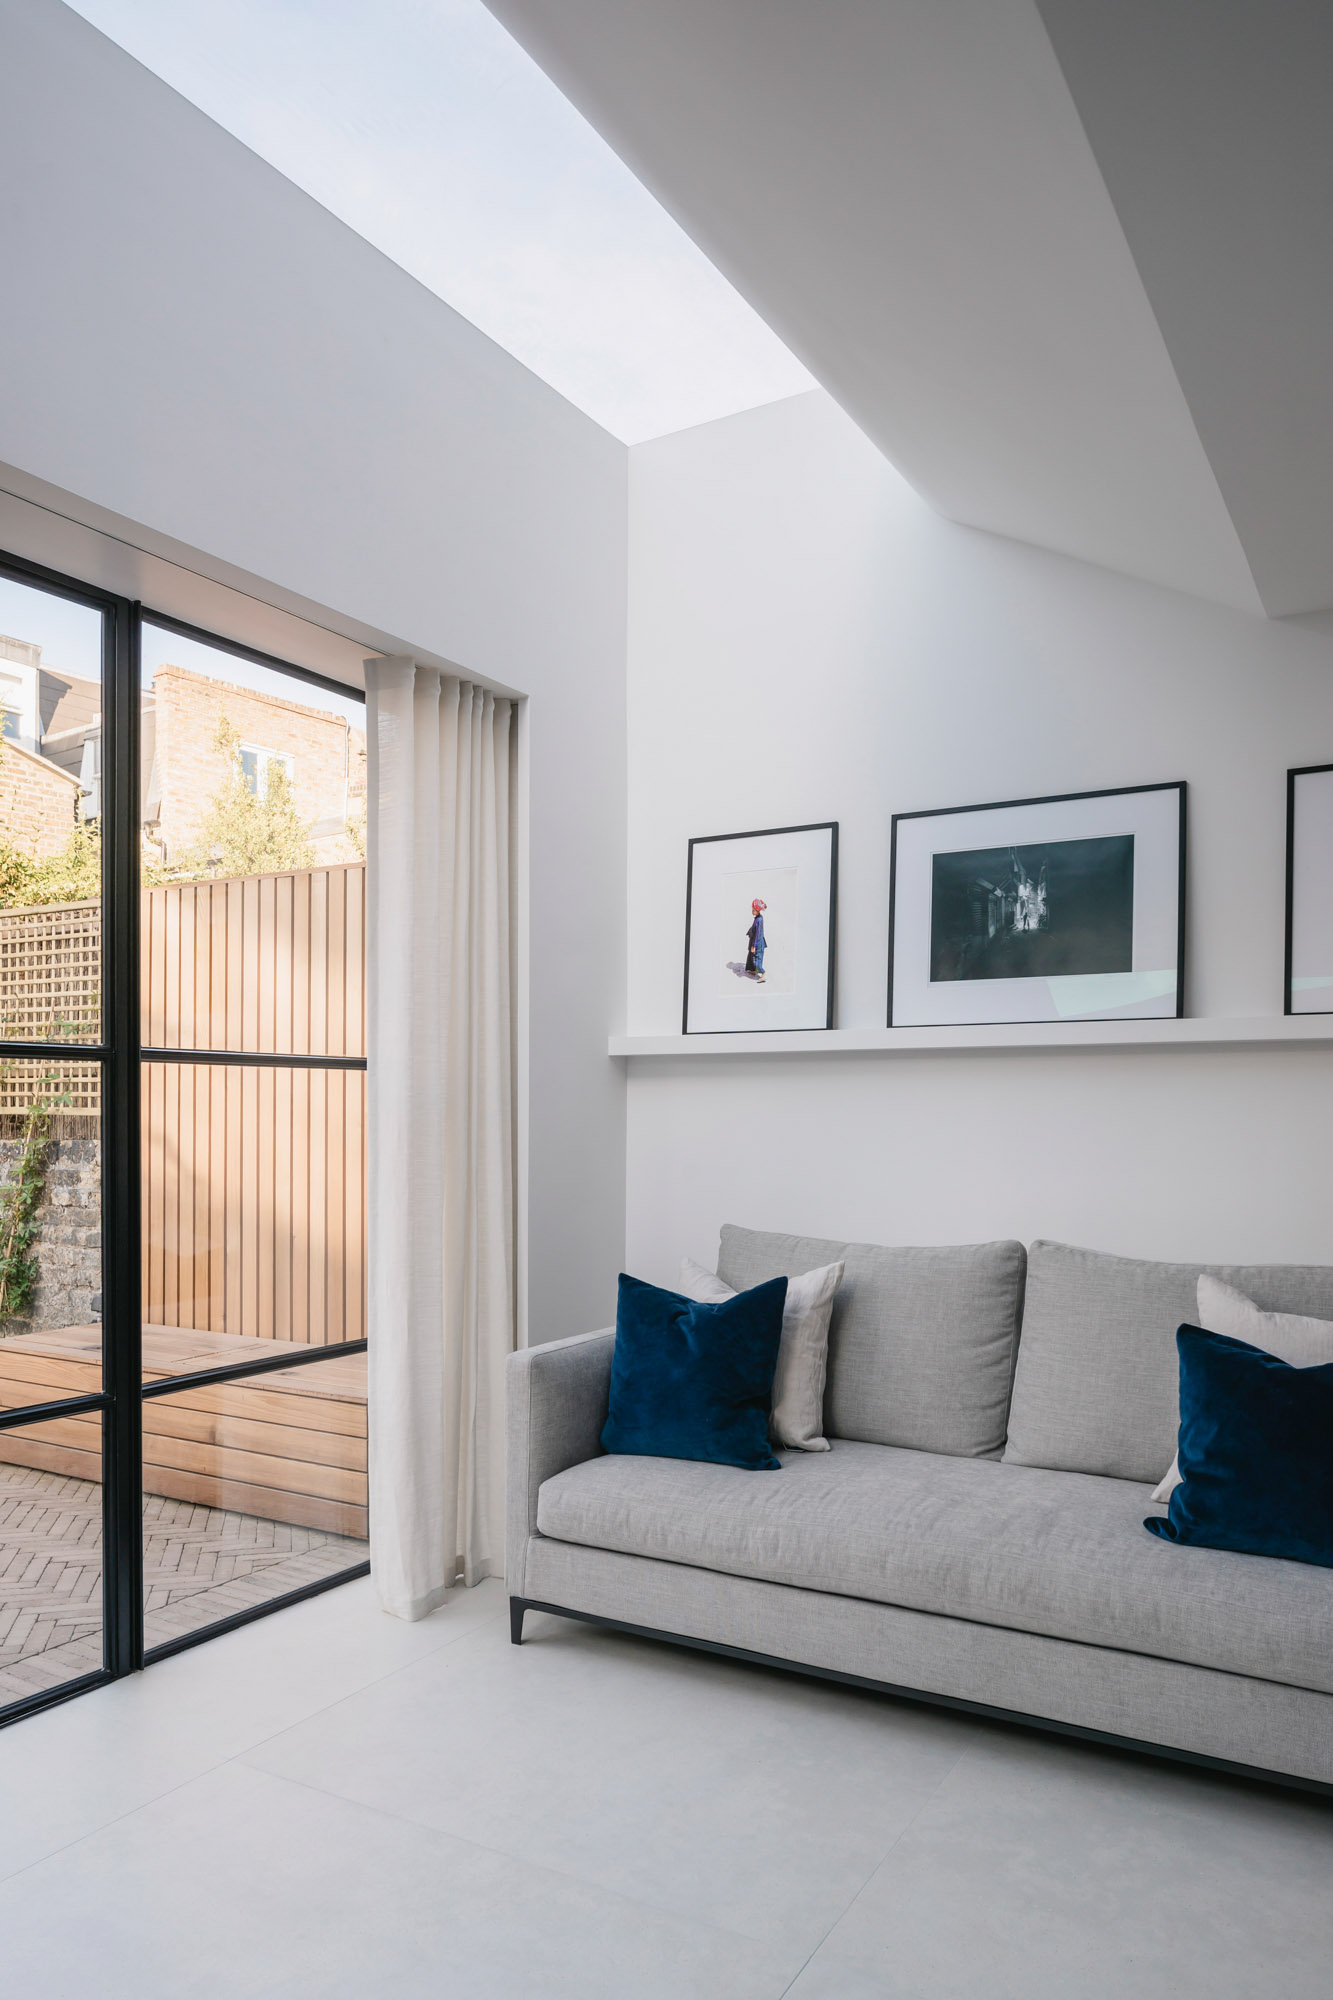 </p> <p>Find your ideal home design pro on designfor-me.com - get matched and see who's interested in your home project. Click image to see more inspiration from our design pros</p> <p>Design by Oliver, architect from Wandsworth, London</p> <p>#architecture #homedesign #modernhomes #homeinspiration #extensions #extensiondesign #extensioninspiration #extensionideas #houseextension #minimalistarchitecture #minimalistdecor #minimalistdesign #miminalism #glazing #architecturalglazing #naturallight #skylights #rooflights </p> <p>